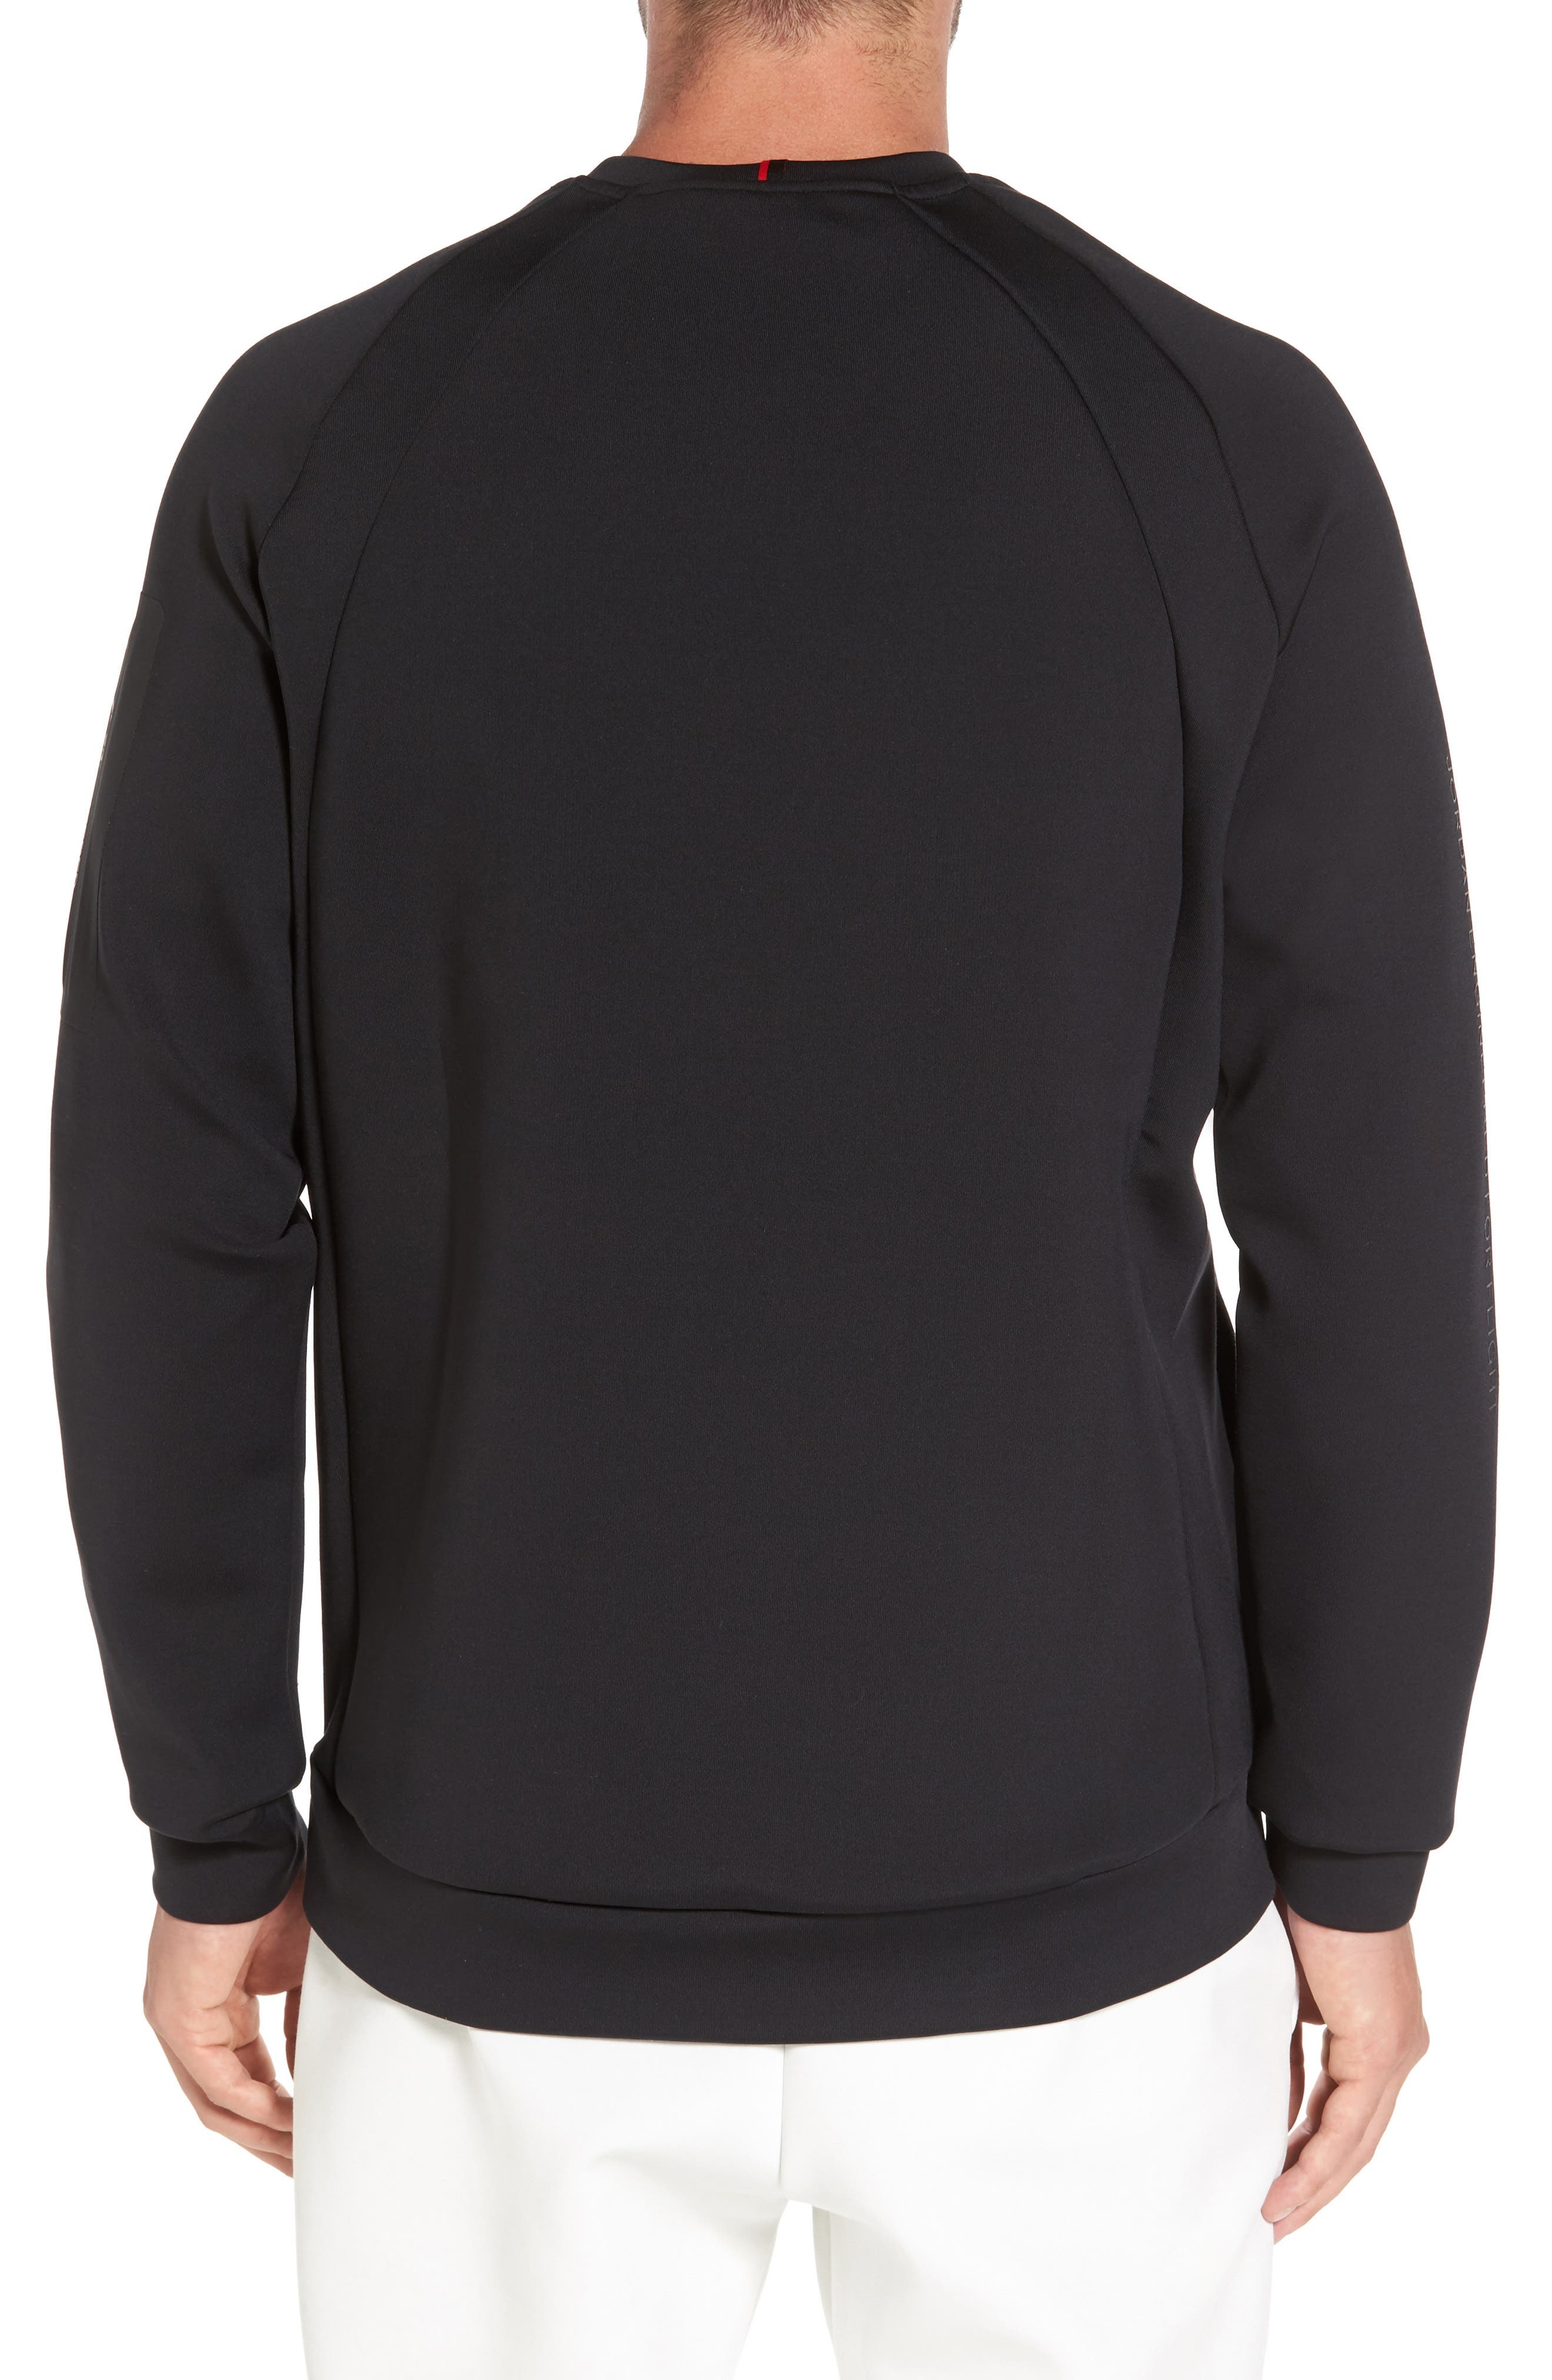 Sportswear Flight Tech Shield Crewneck,                             Alternate thumbnail 2, color,                             010